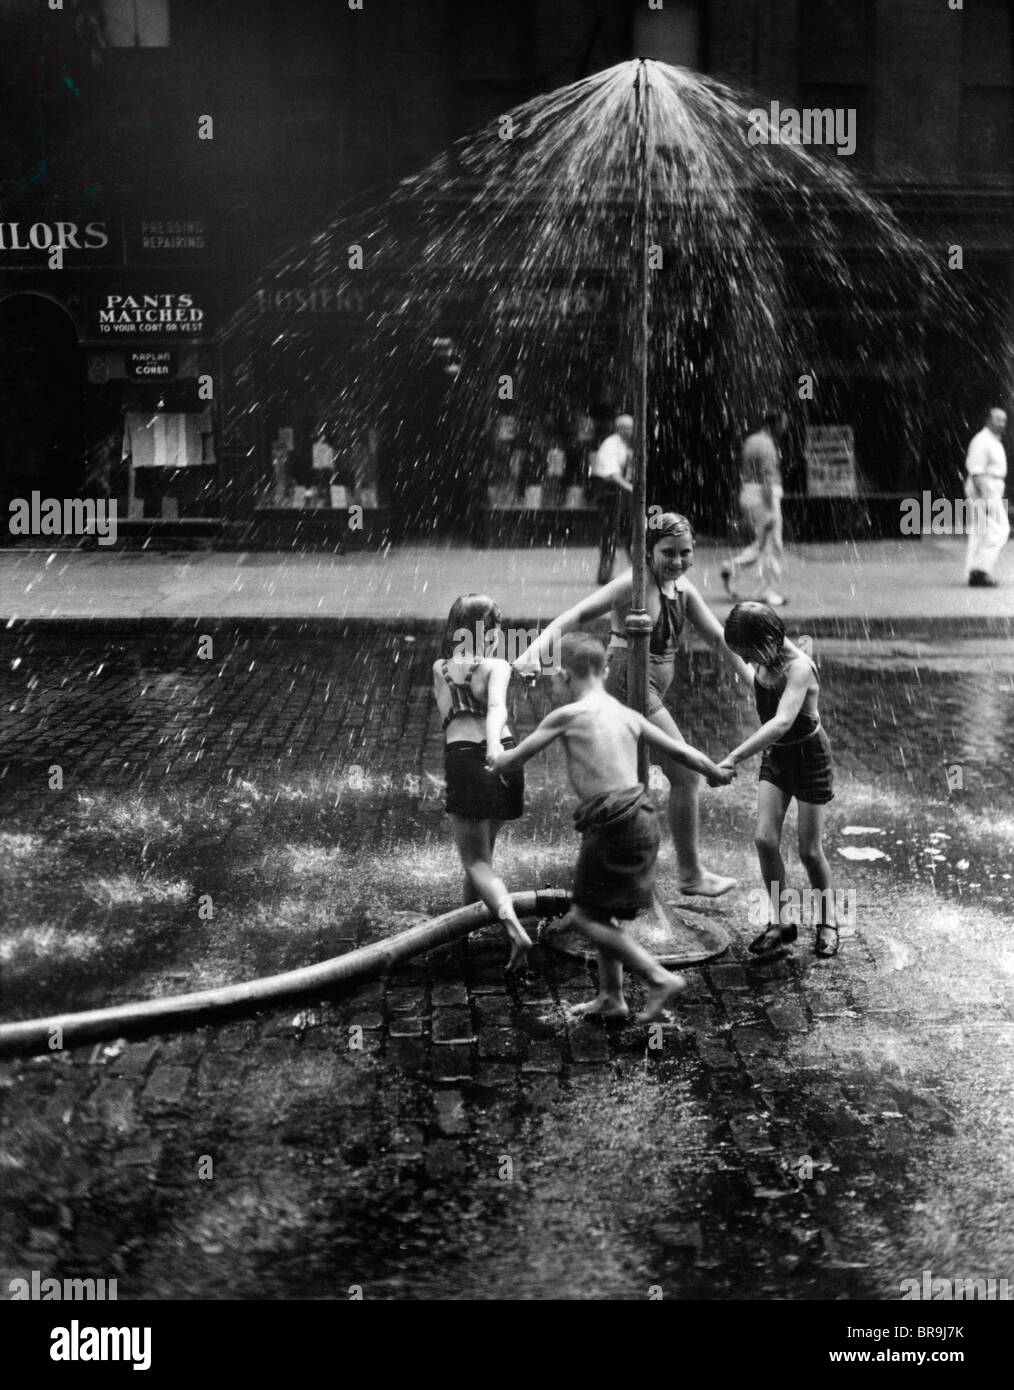 1930s INNER CITY CHILDREN PLAYING IN SPRAY FROM FIRE HYDRANT WATER SPRINKLER - Stock Image